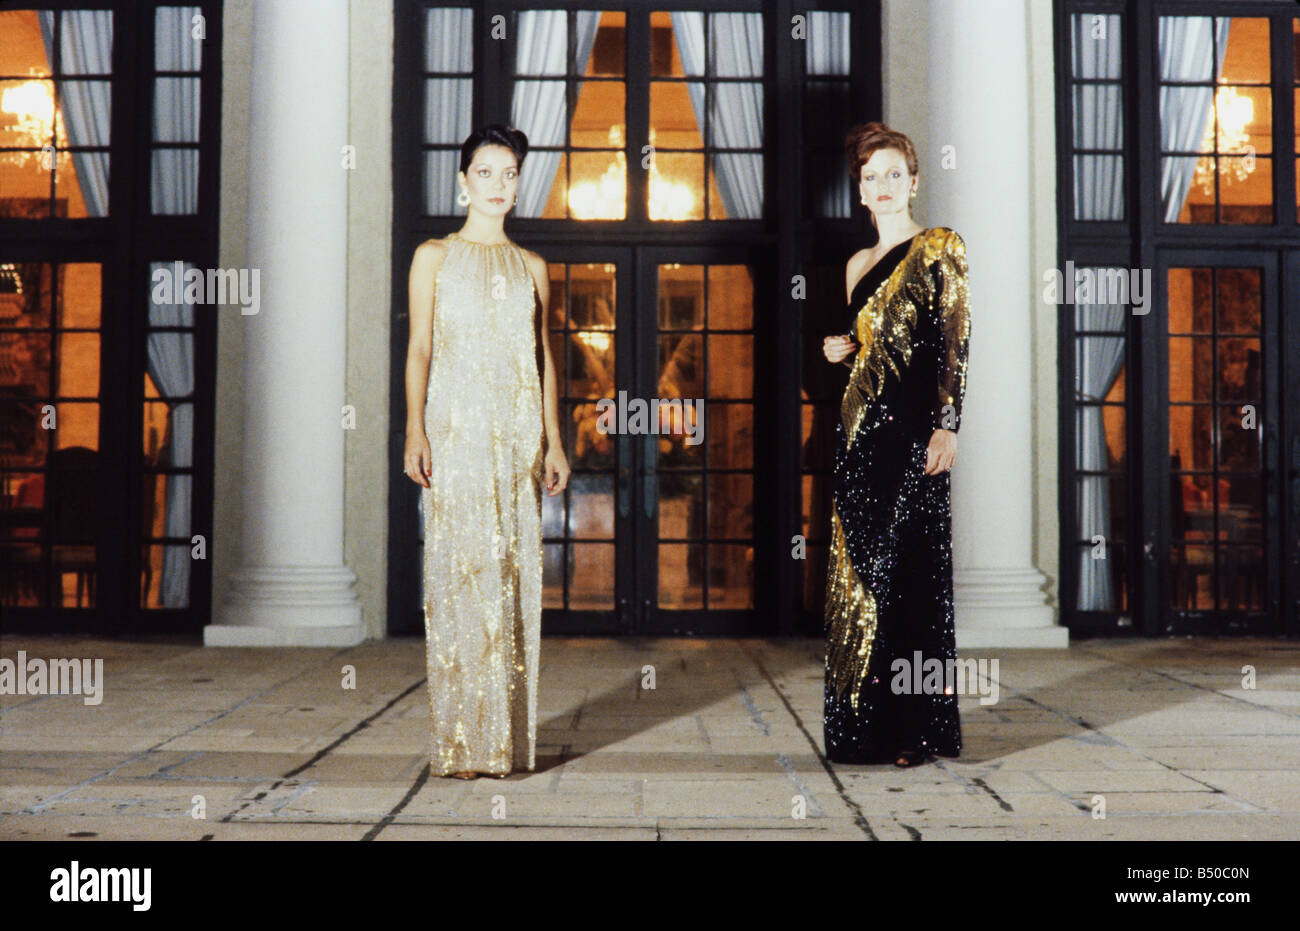 Women dressed for gala affair,wearing formal evening gowns, Plam Beach Florida - Stock Image